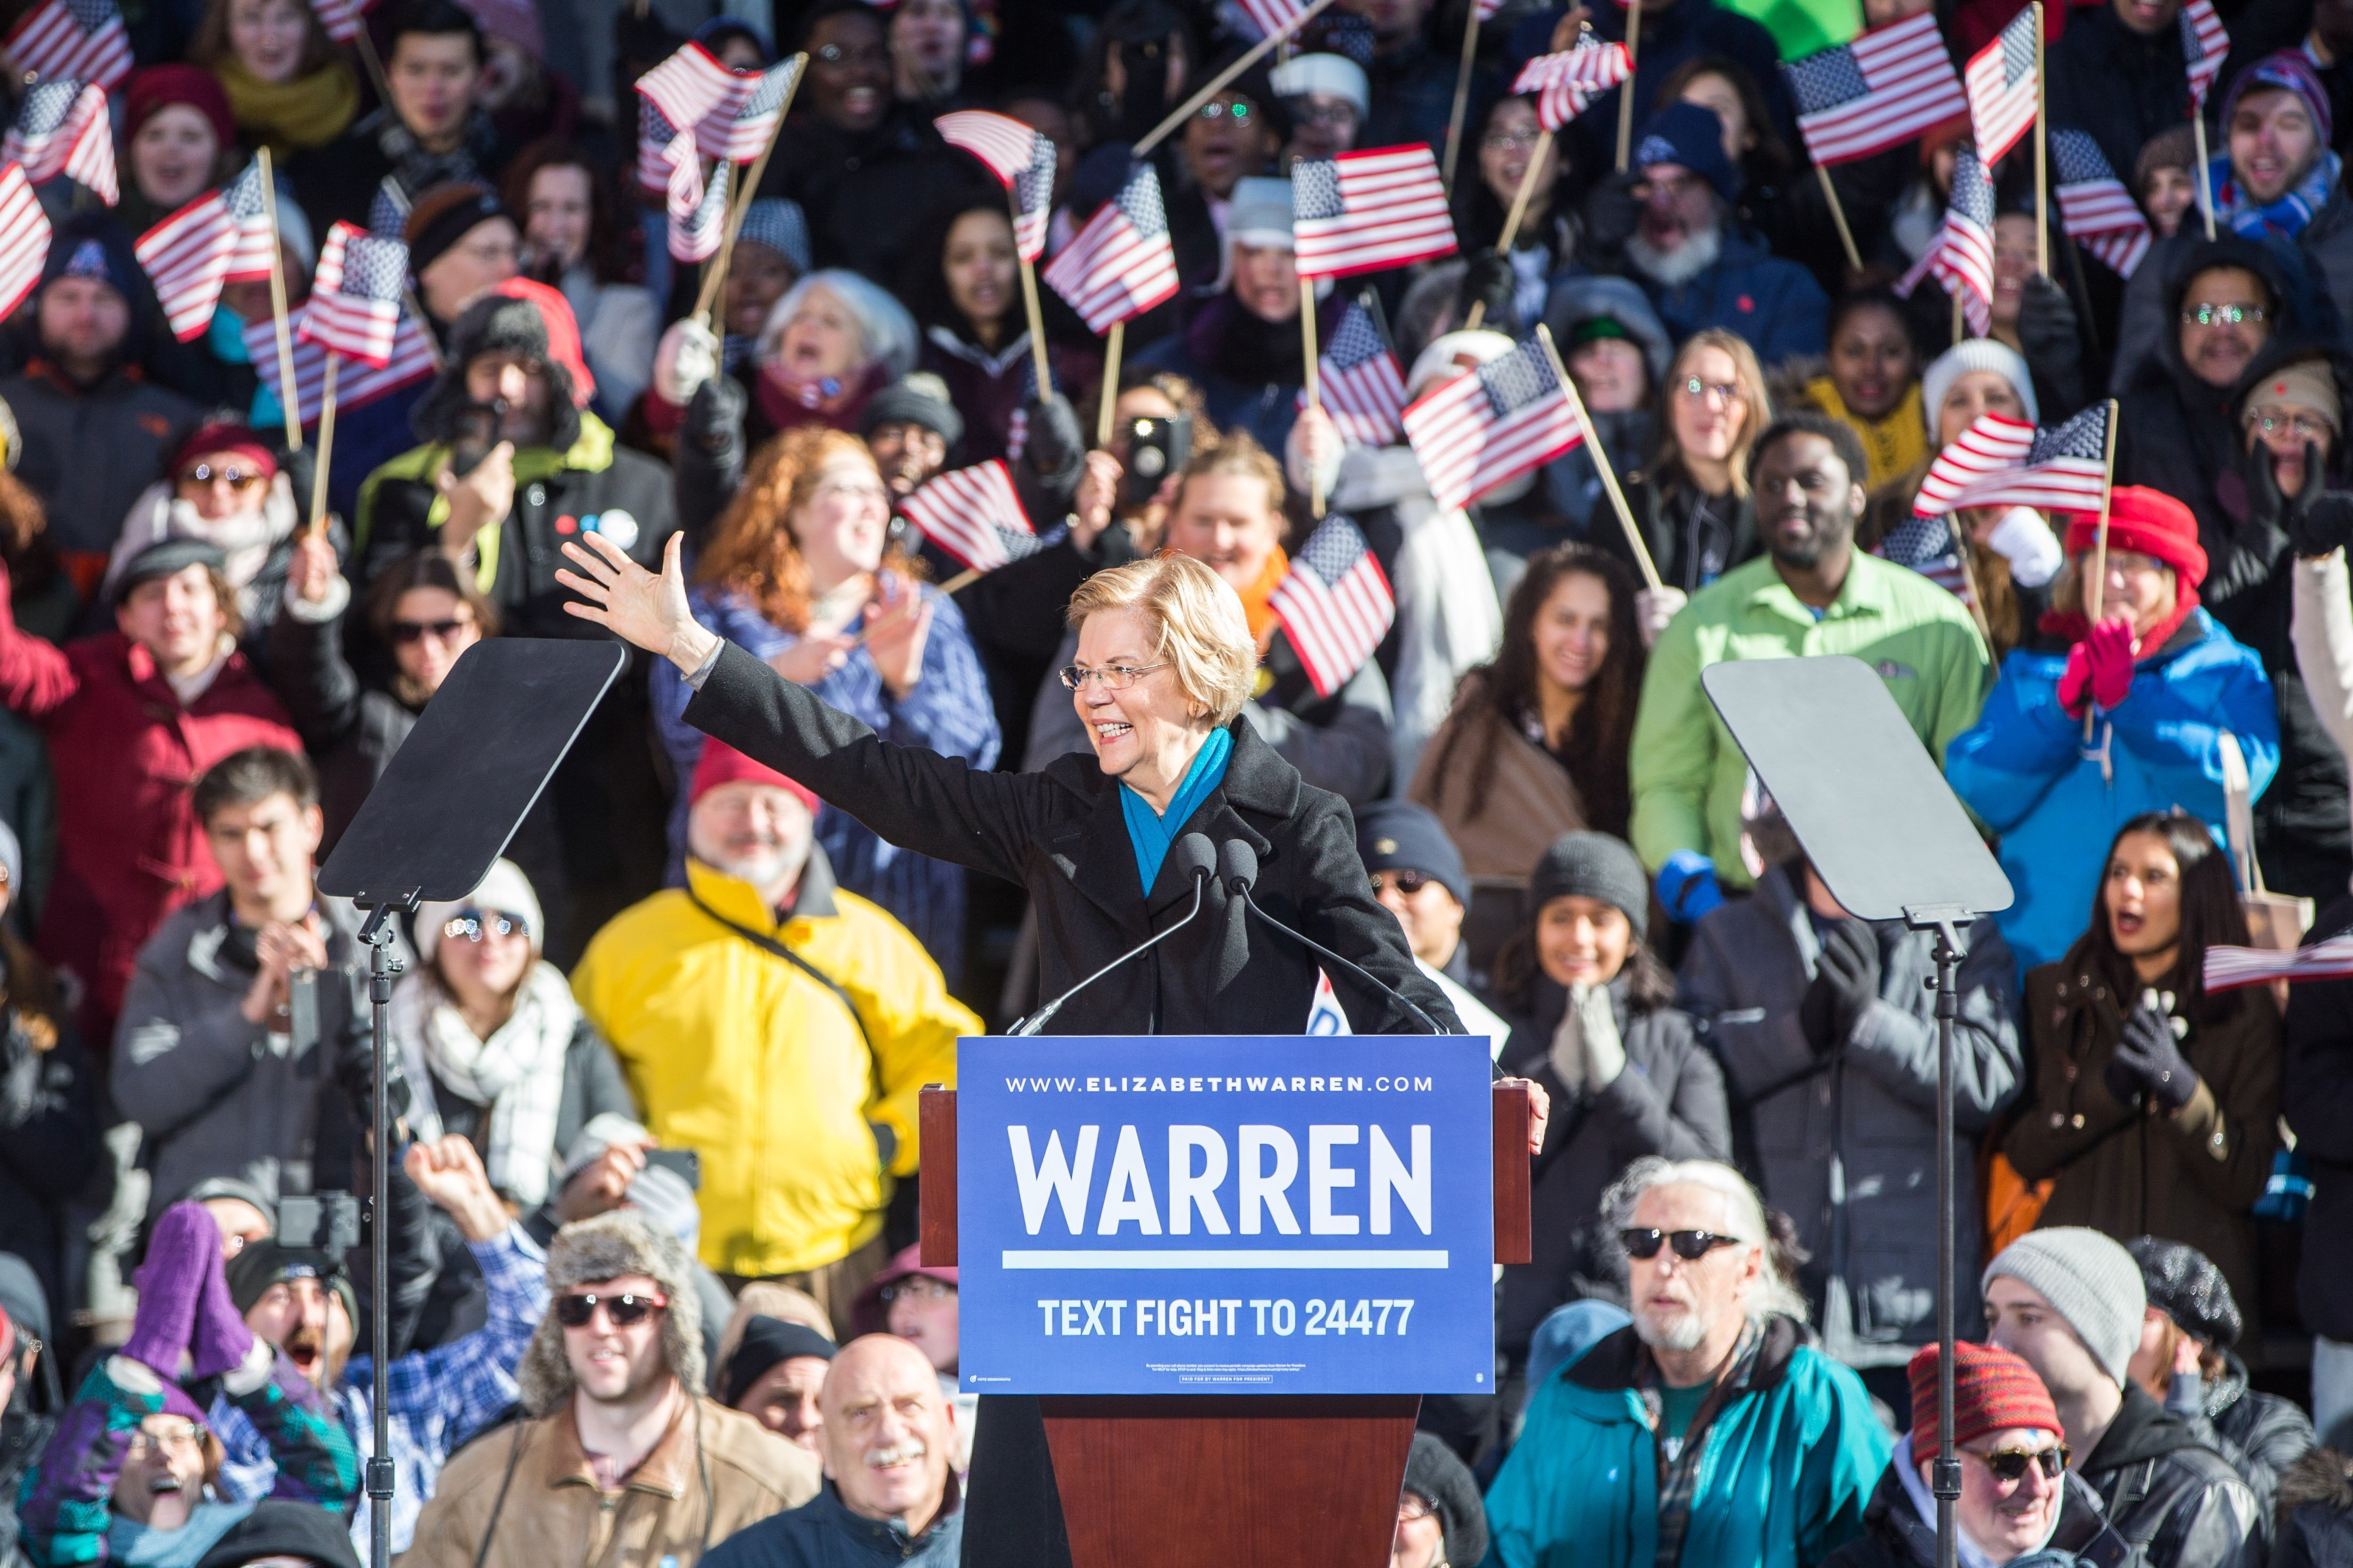 Elizabeth Warren announcing her run for President in Lawrence, Massachusetts | Photo: Getty Images